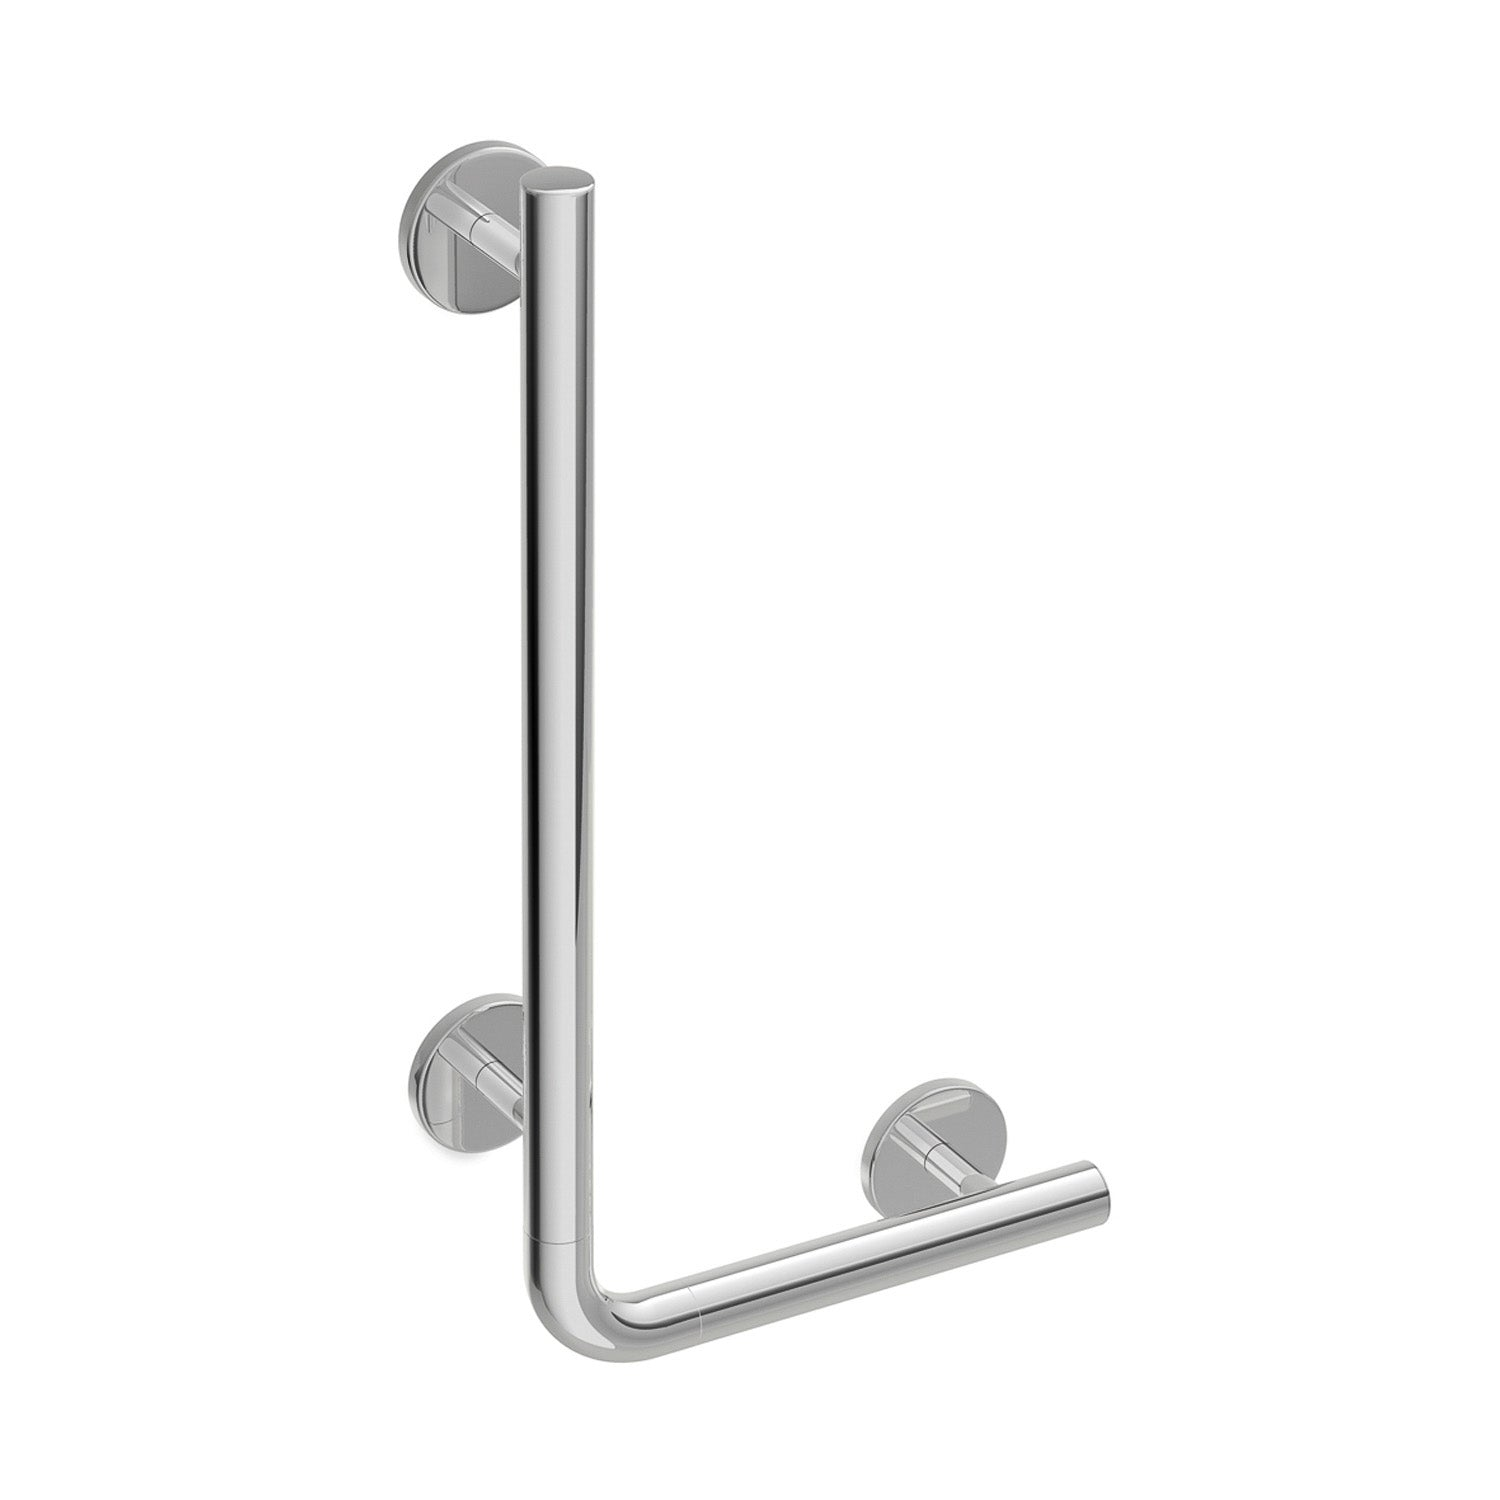 1000x500mm Right Handed Circula L Shaped Grab Rail with a chrome look finish on a white background